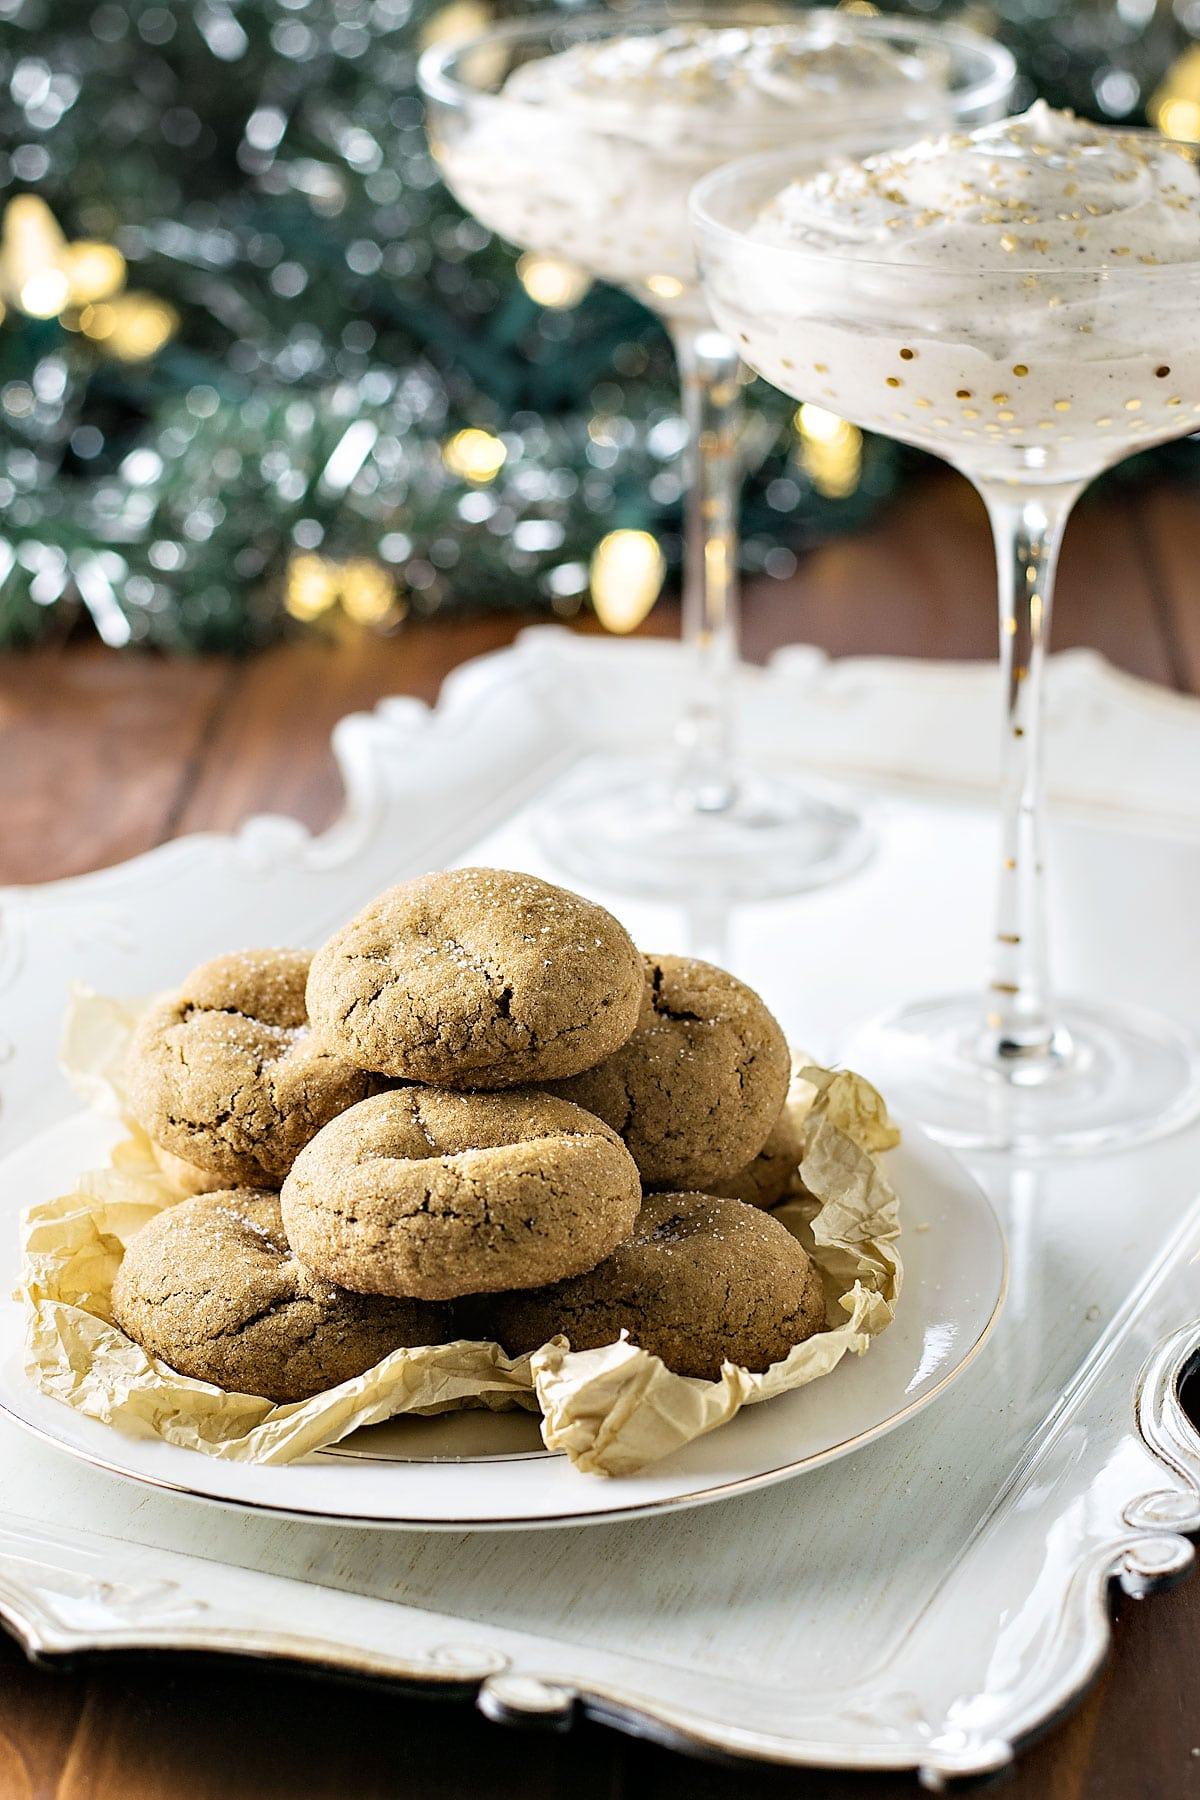 Skinny Ginger Cookies and Eggnog Dip! Need a festive treat to enjoy this holiday season without all the guilt? The ginger cookies are soft 'n chewy and the eggnog dip is creamy 'n sweet – all with fewer calories! #ZingBakingHoliday #ad | HomemadeHooplah.com